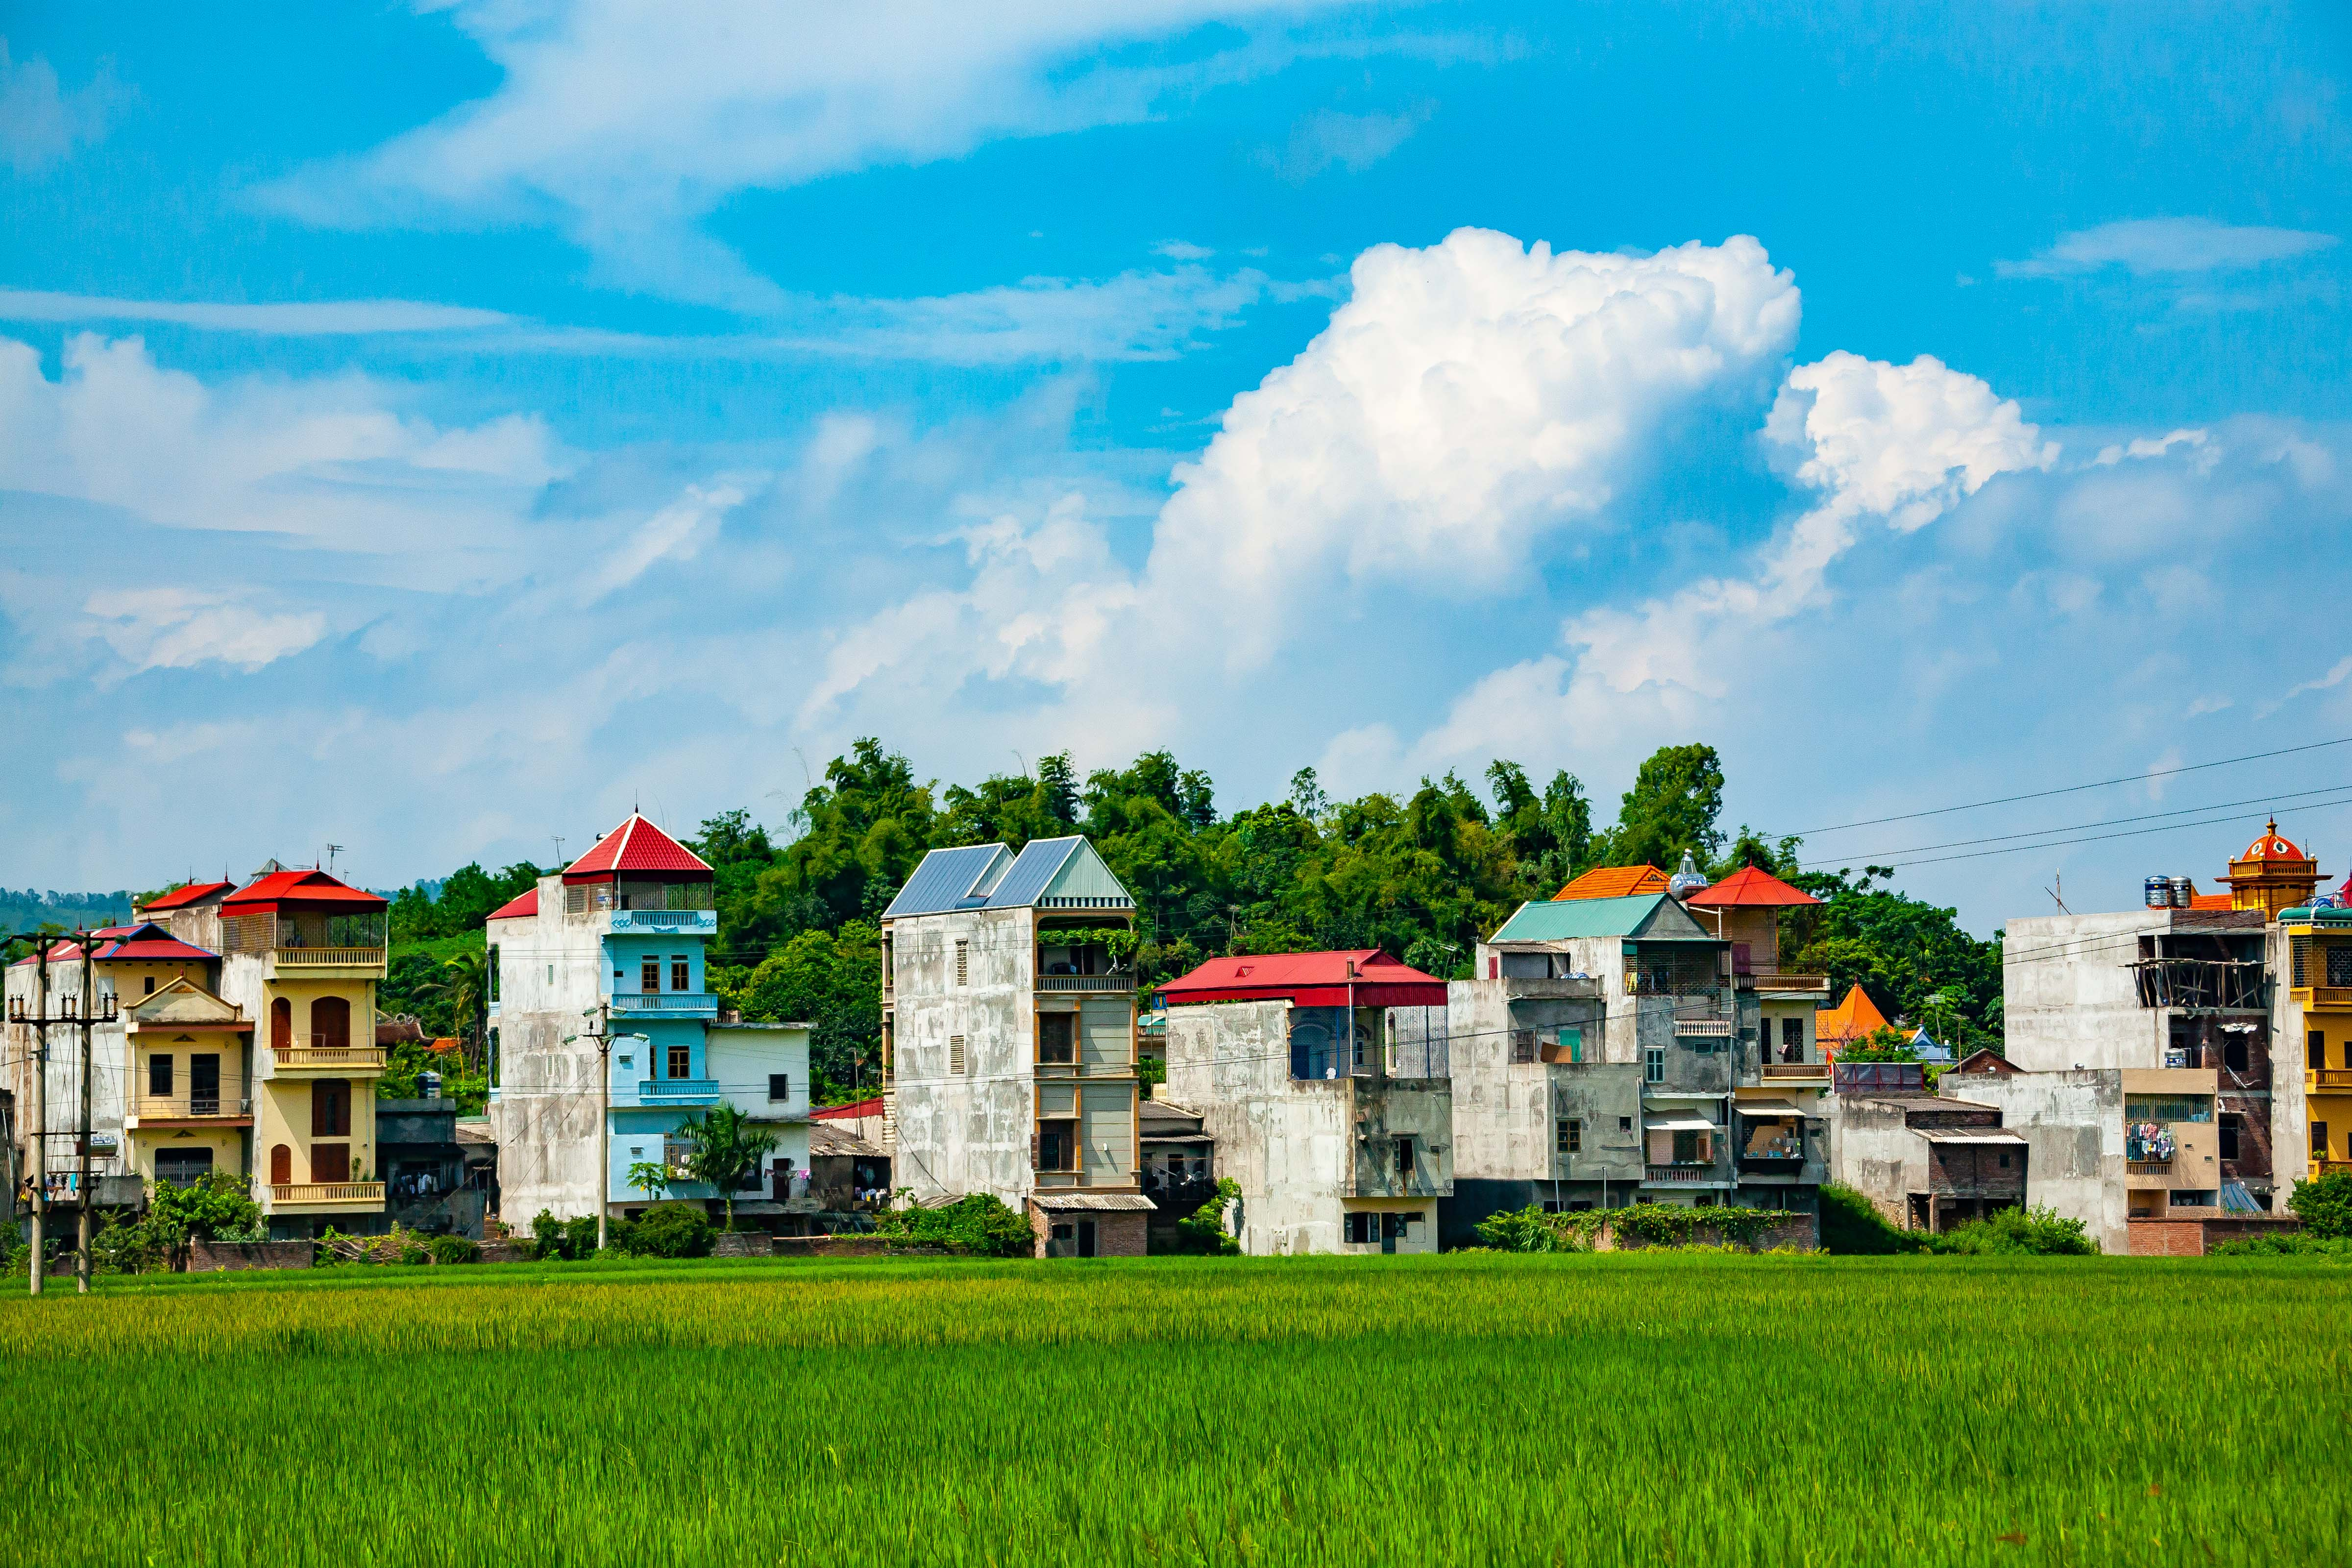 Vietnam, Ha Tay Prov, Typical Dwelling Design, 2008, IMG 7445